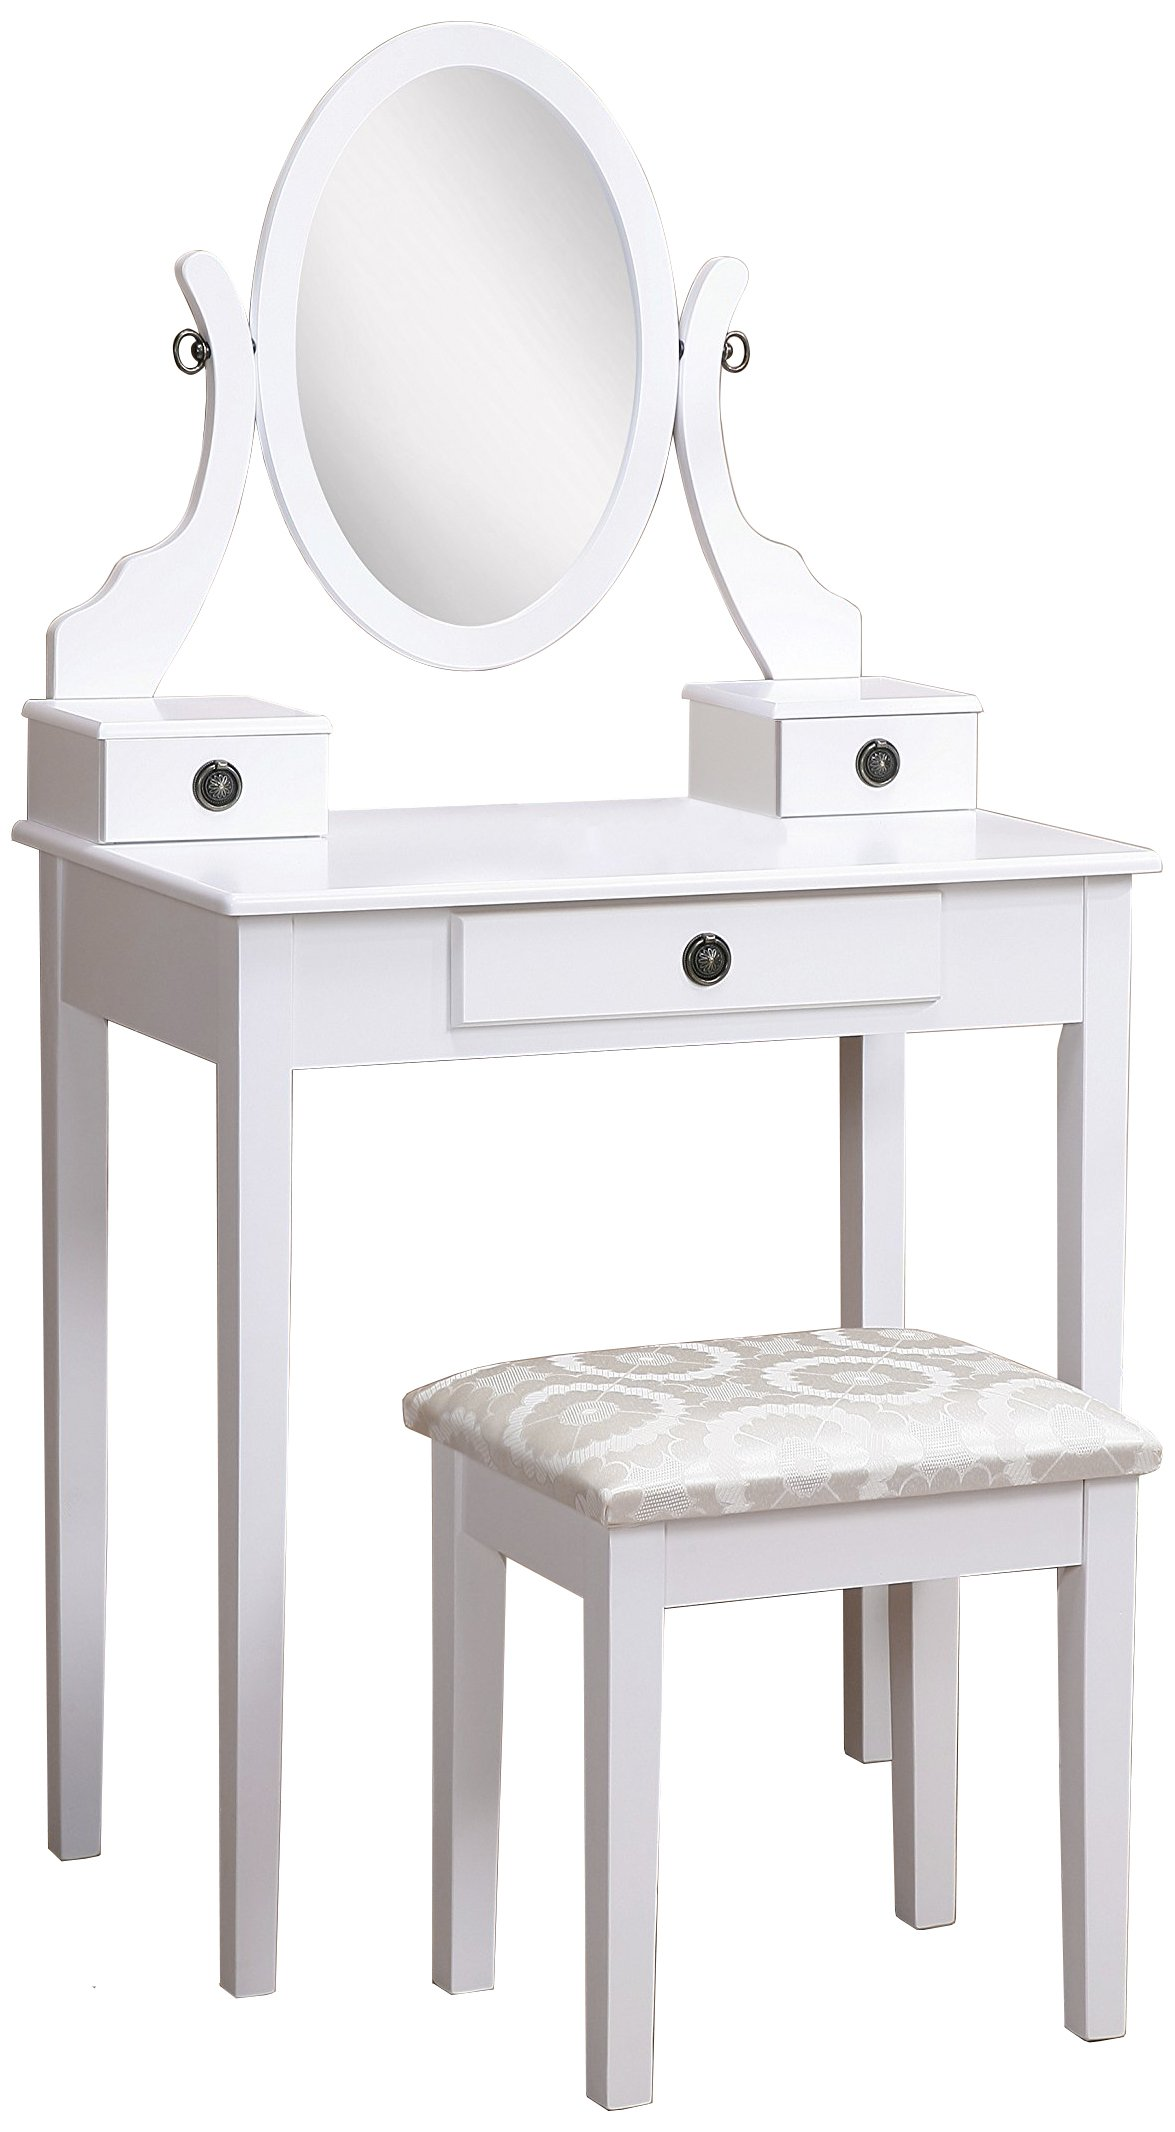 Roundhill Furniture Moniya White Wood Vanity Table and Stool Set by Roundhill Furniture